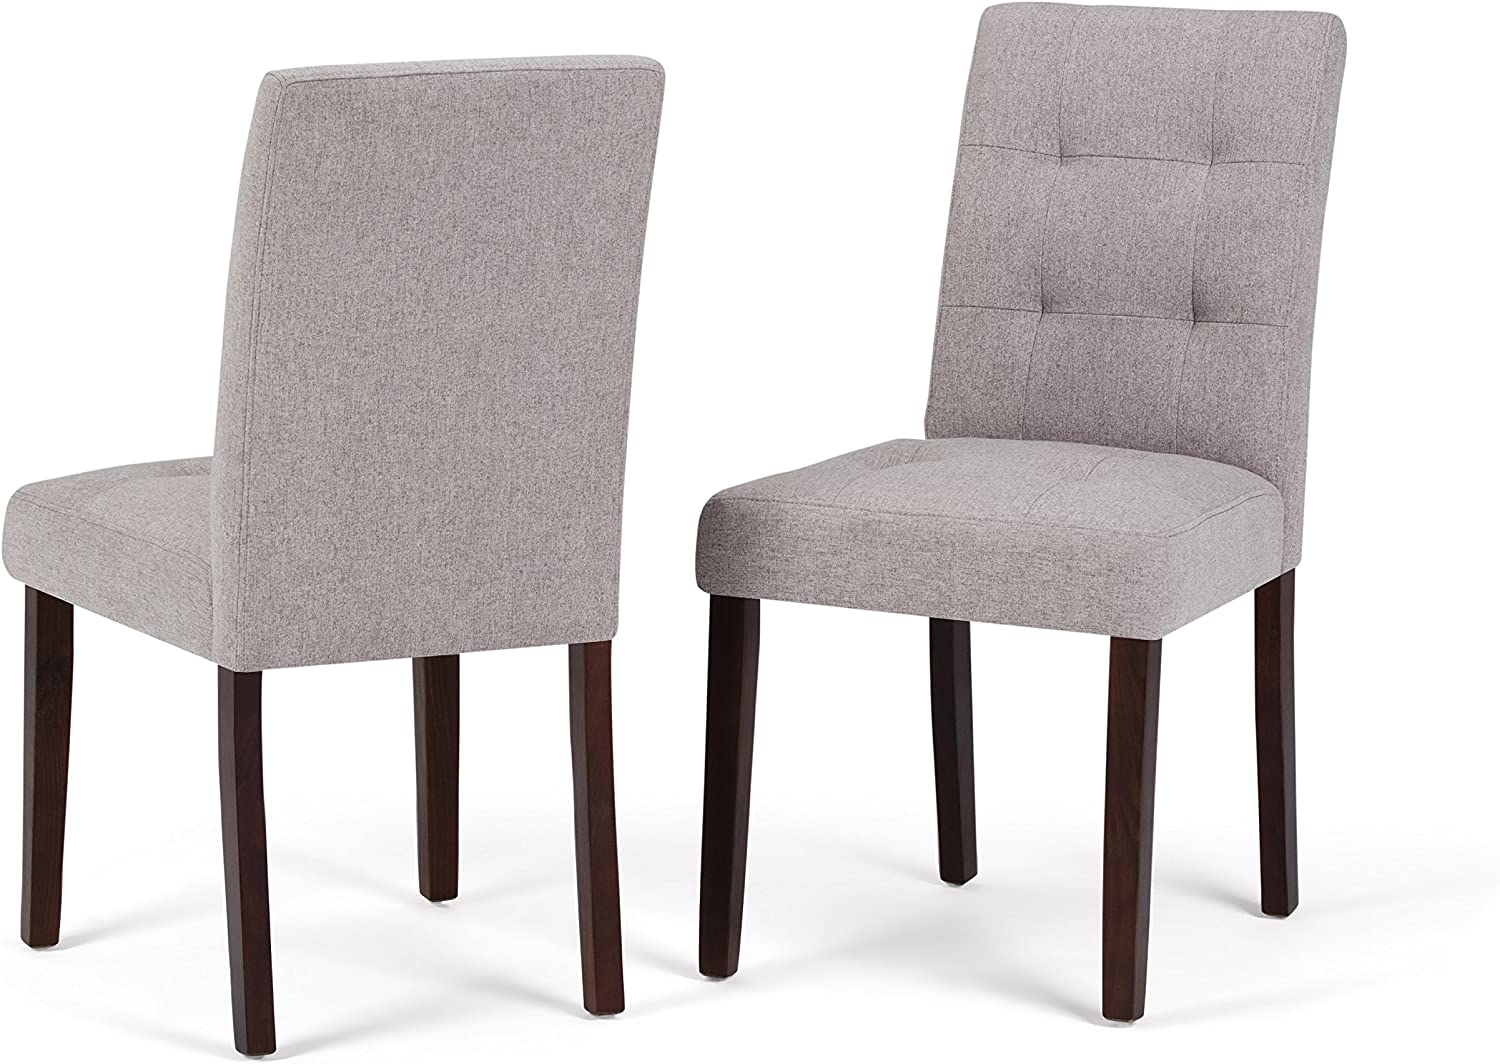 Simpli Home AXCDCHR-004-CLG Andover Contemporary Parson Dining Chair (Set of 2) in Cloud Grey Linen Look Fabric